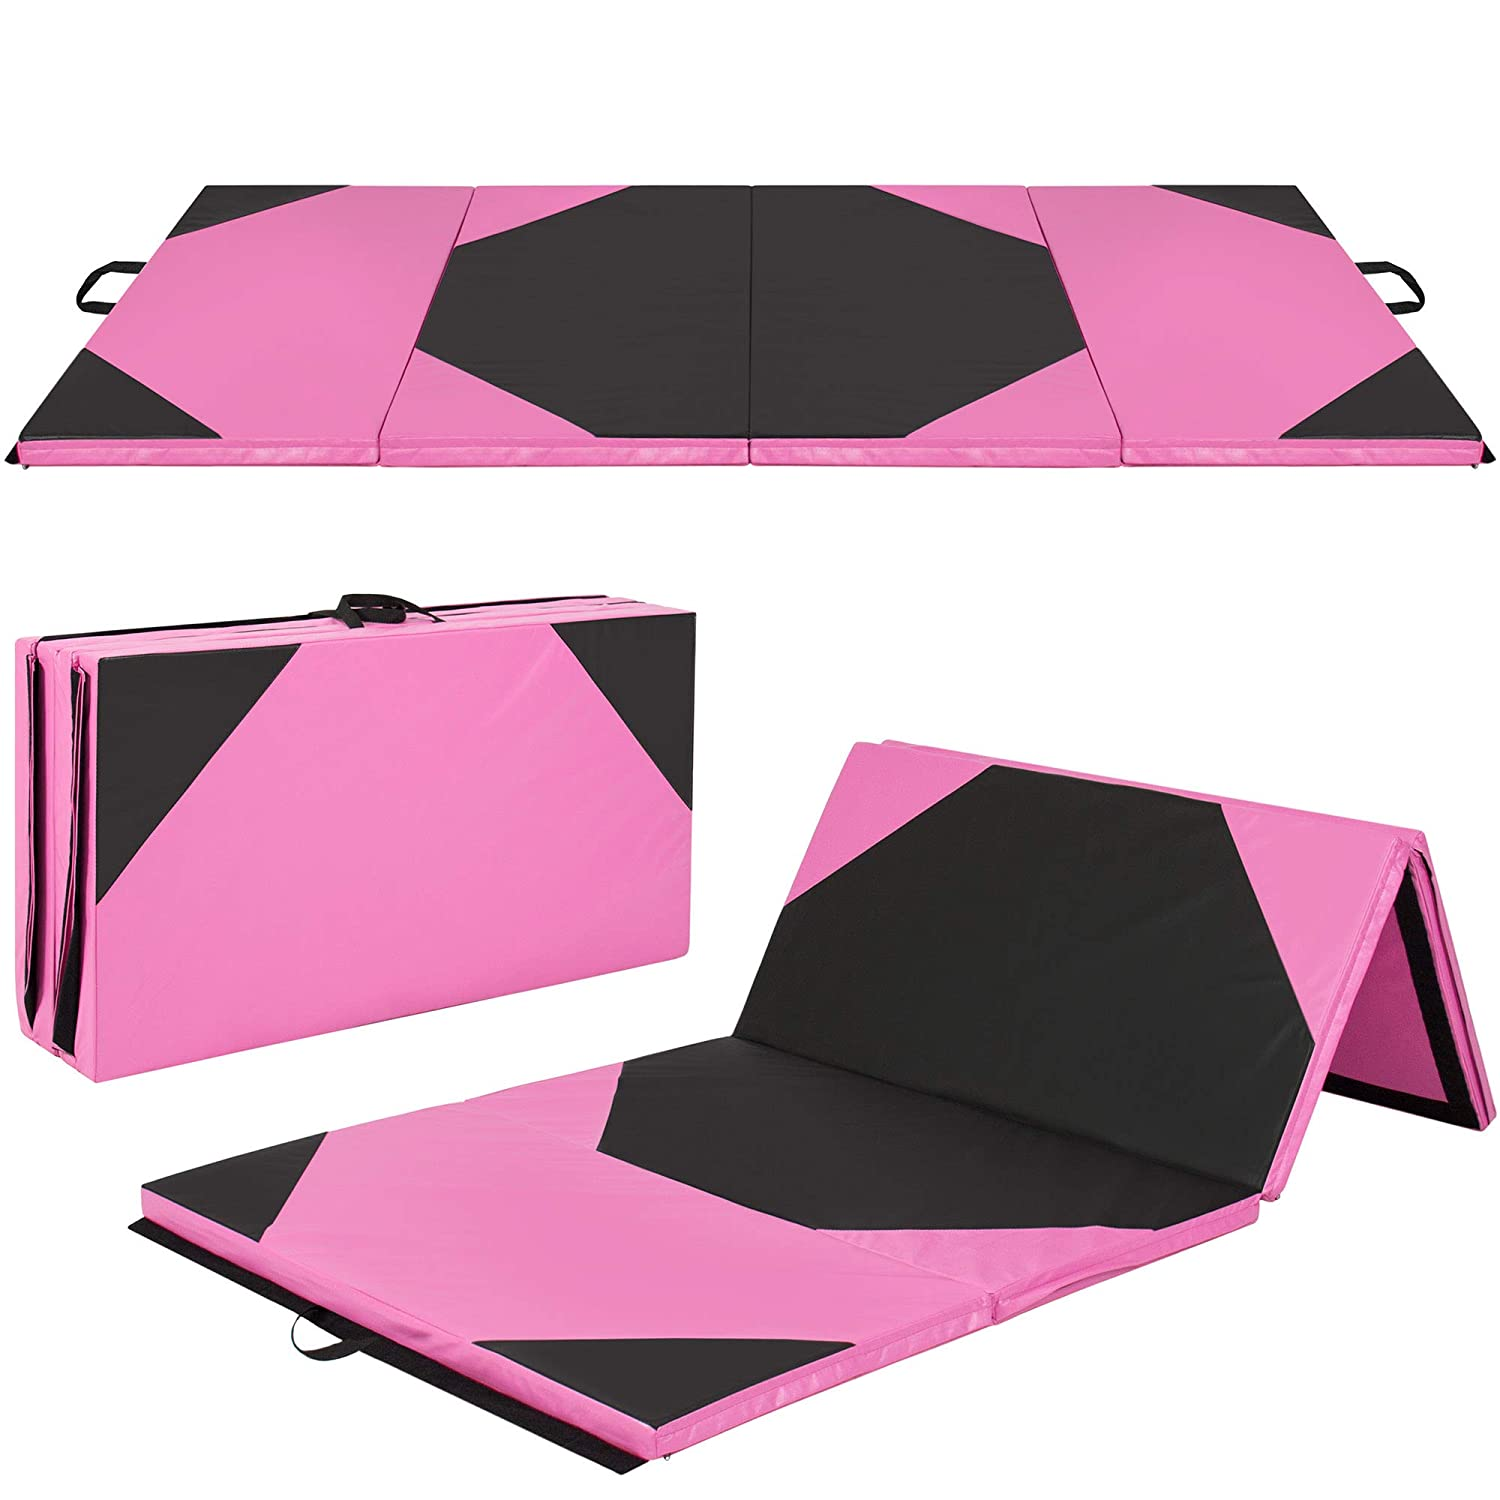 Best Choice Products 4 x10 x2 Gymnastics Gym Folding Exercise Aerobics Mats Stretching Yoga Mat